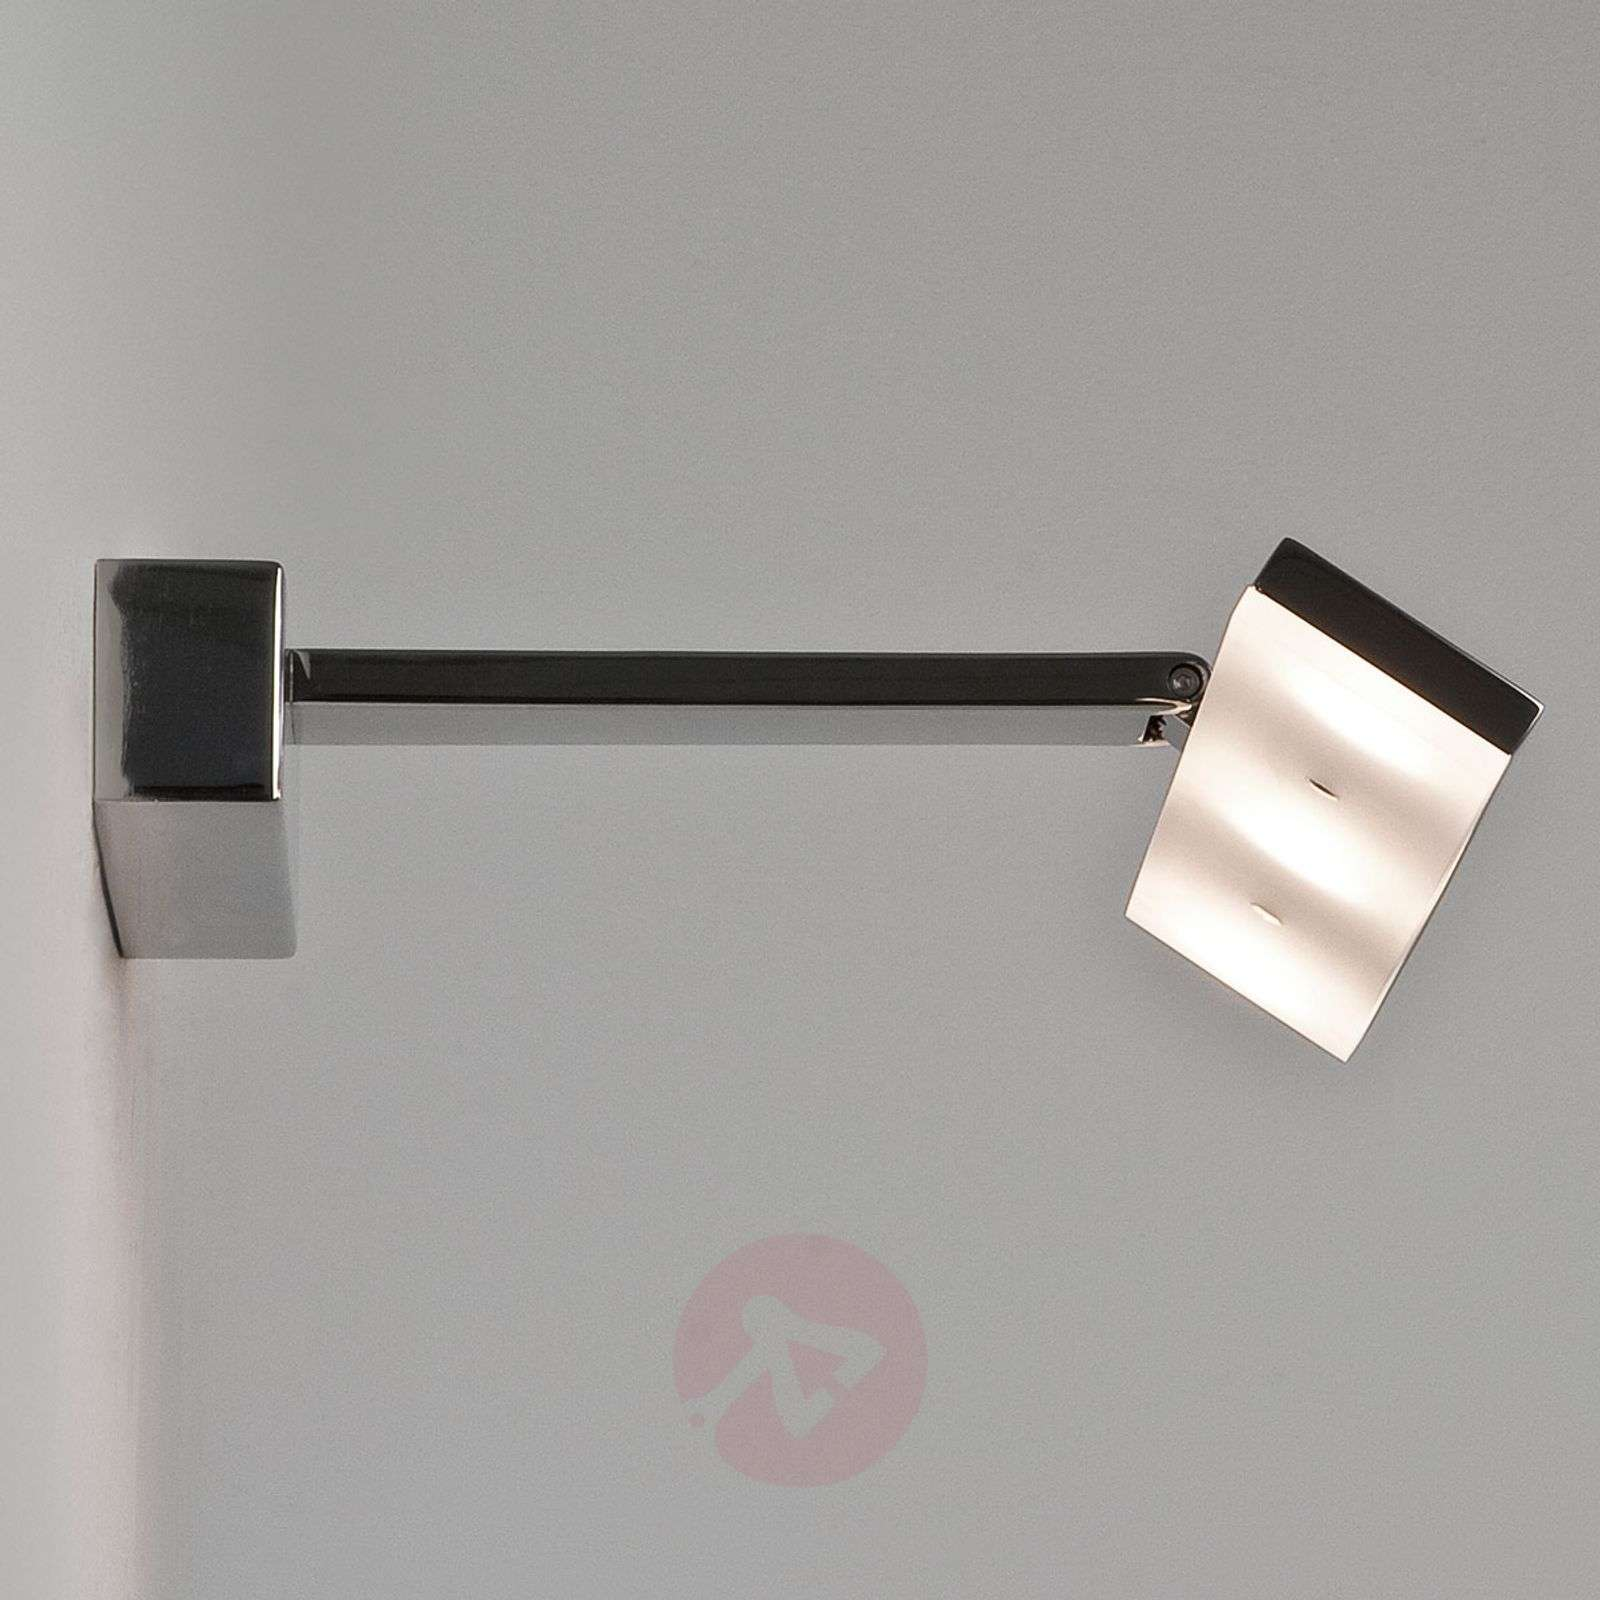 Innovatieve LED-wandlamp ZIP-1020386-03